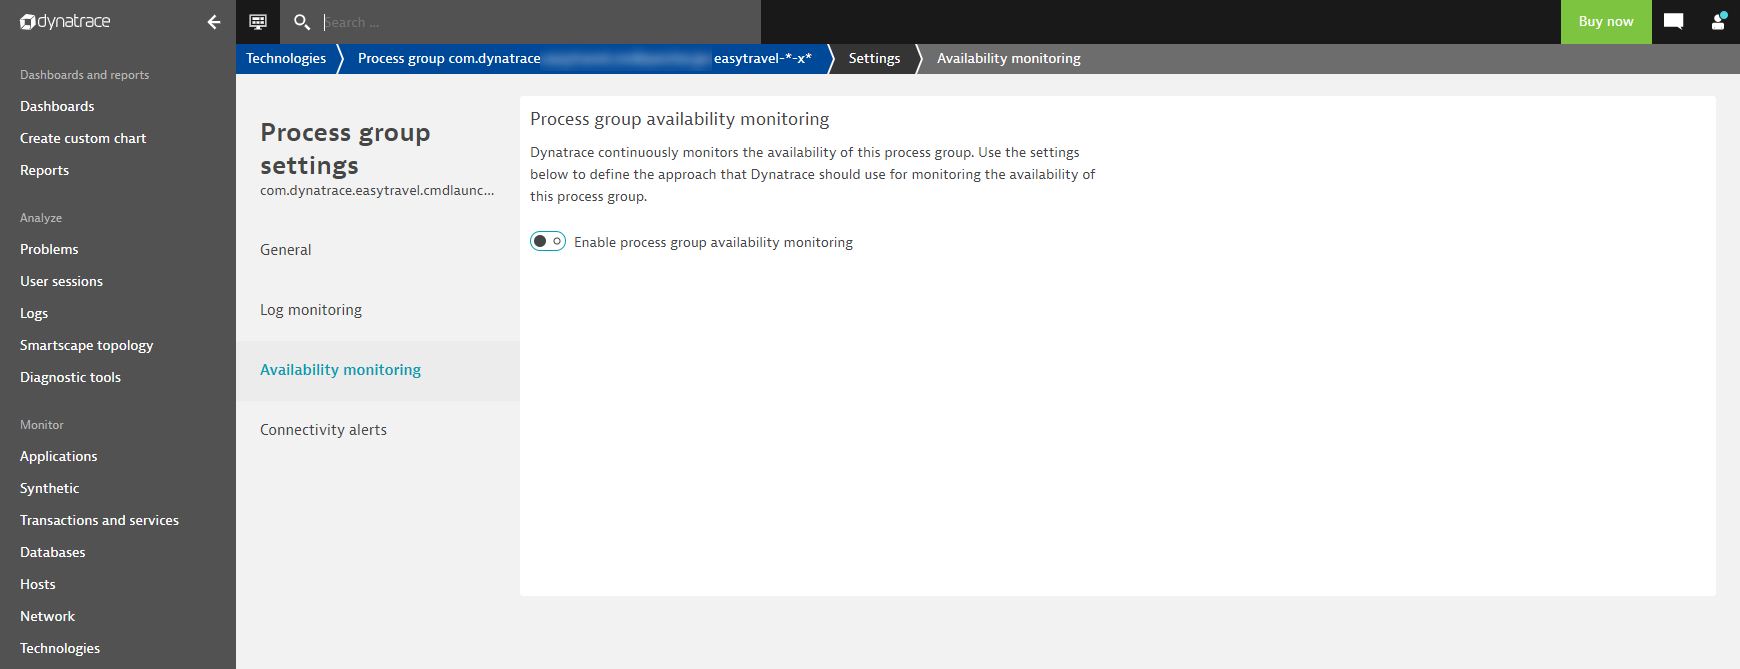 Process group availability alerting off by default